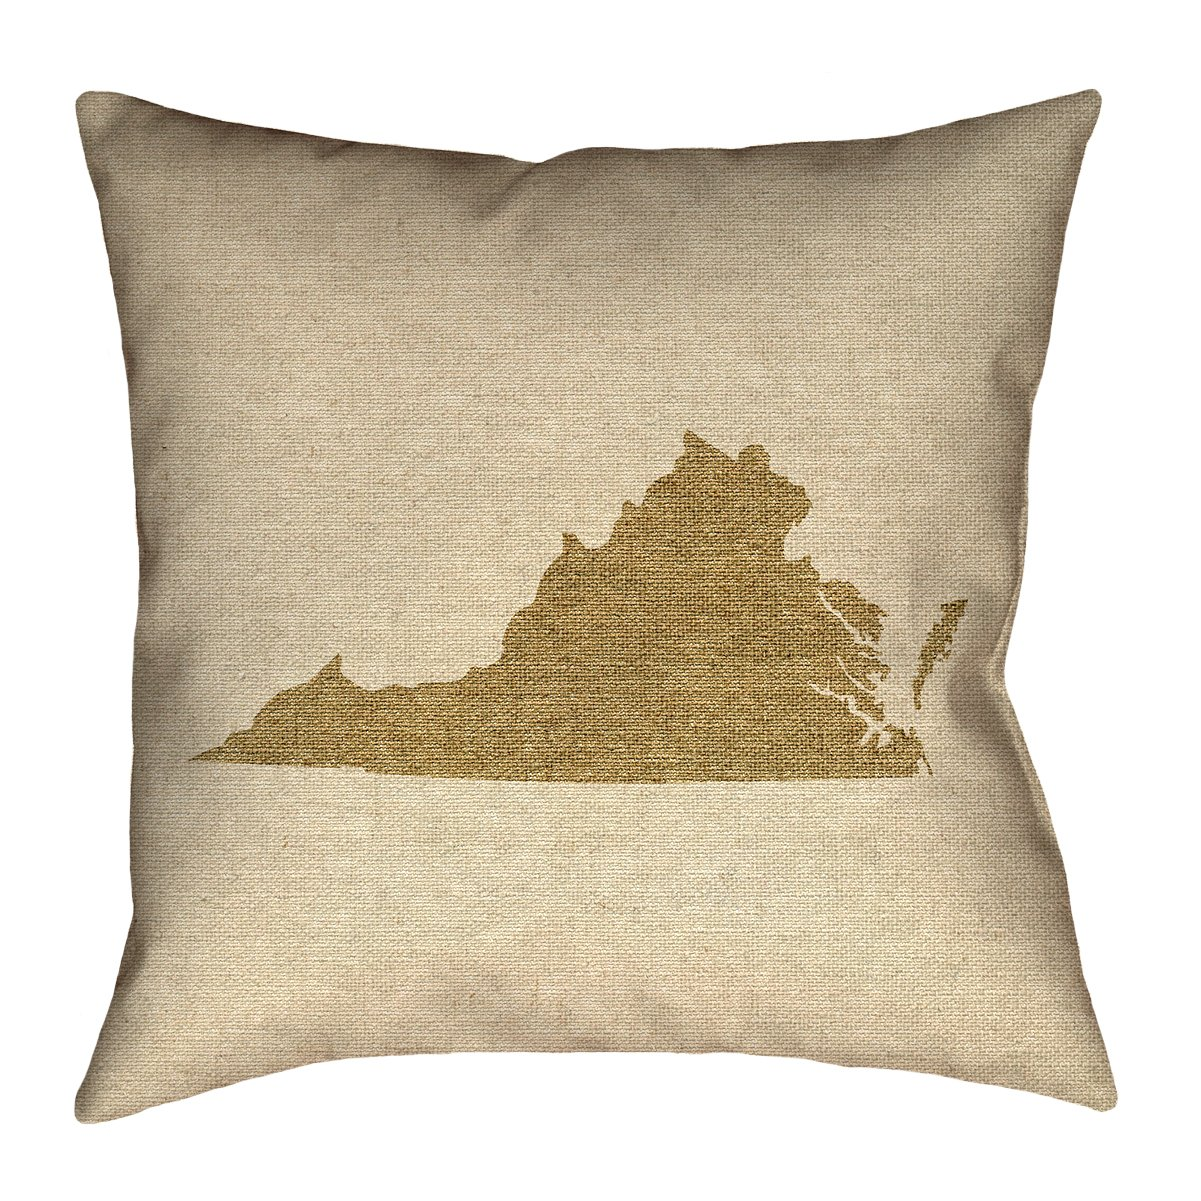 ArtVerse Katelyn Smith 18 x 18 Poly Twill Double Sided Print with Concealed Zipper /& Insert Virginia Canvas Pillow